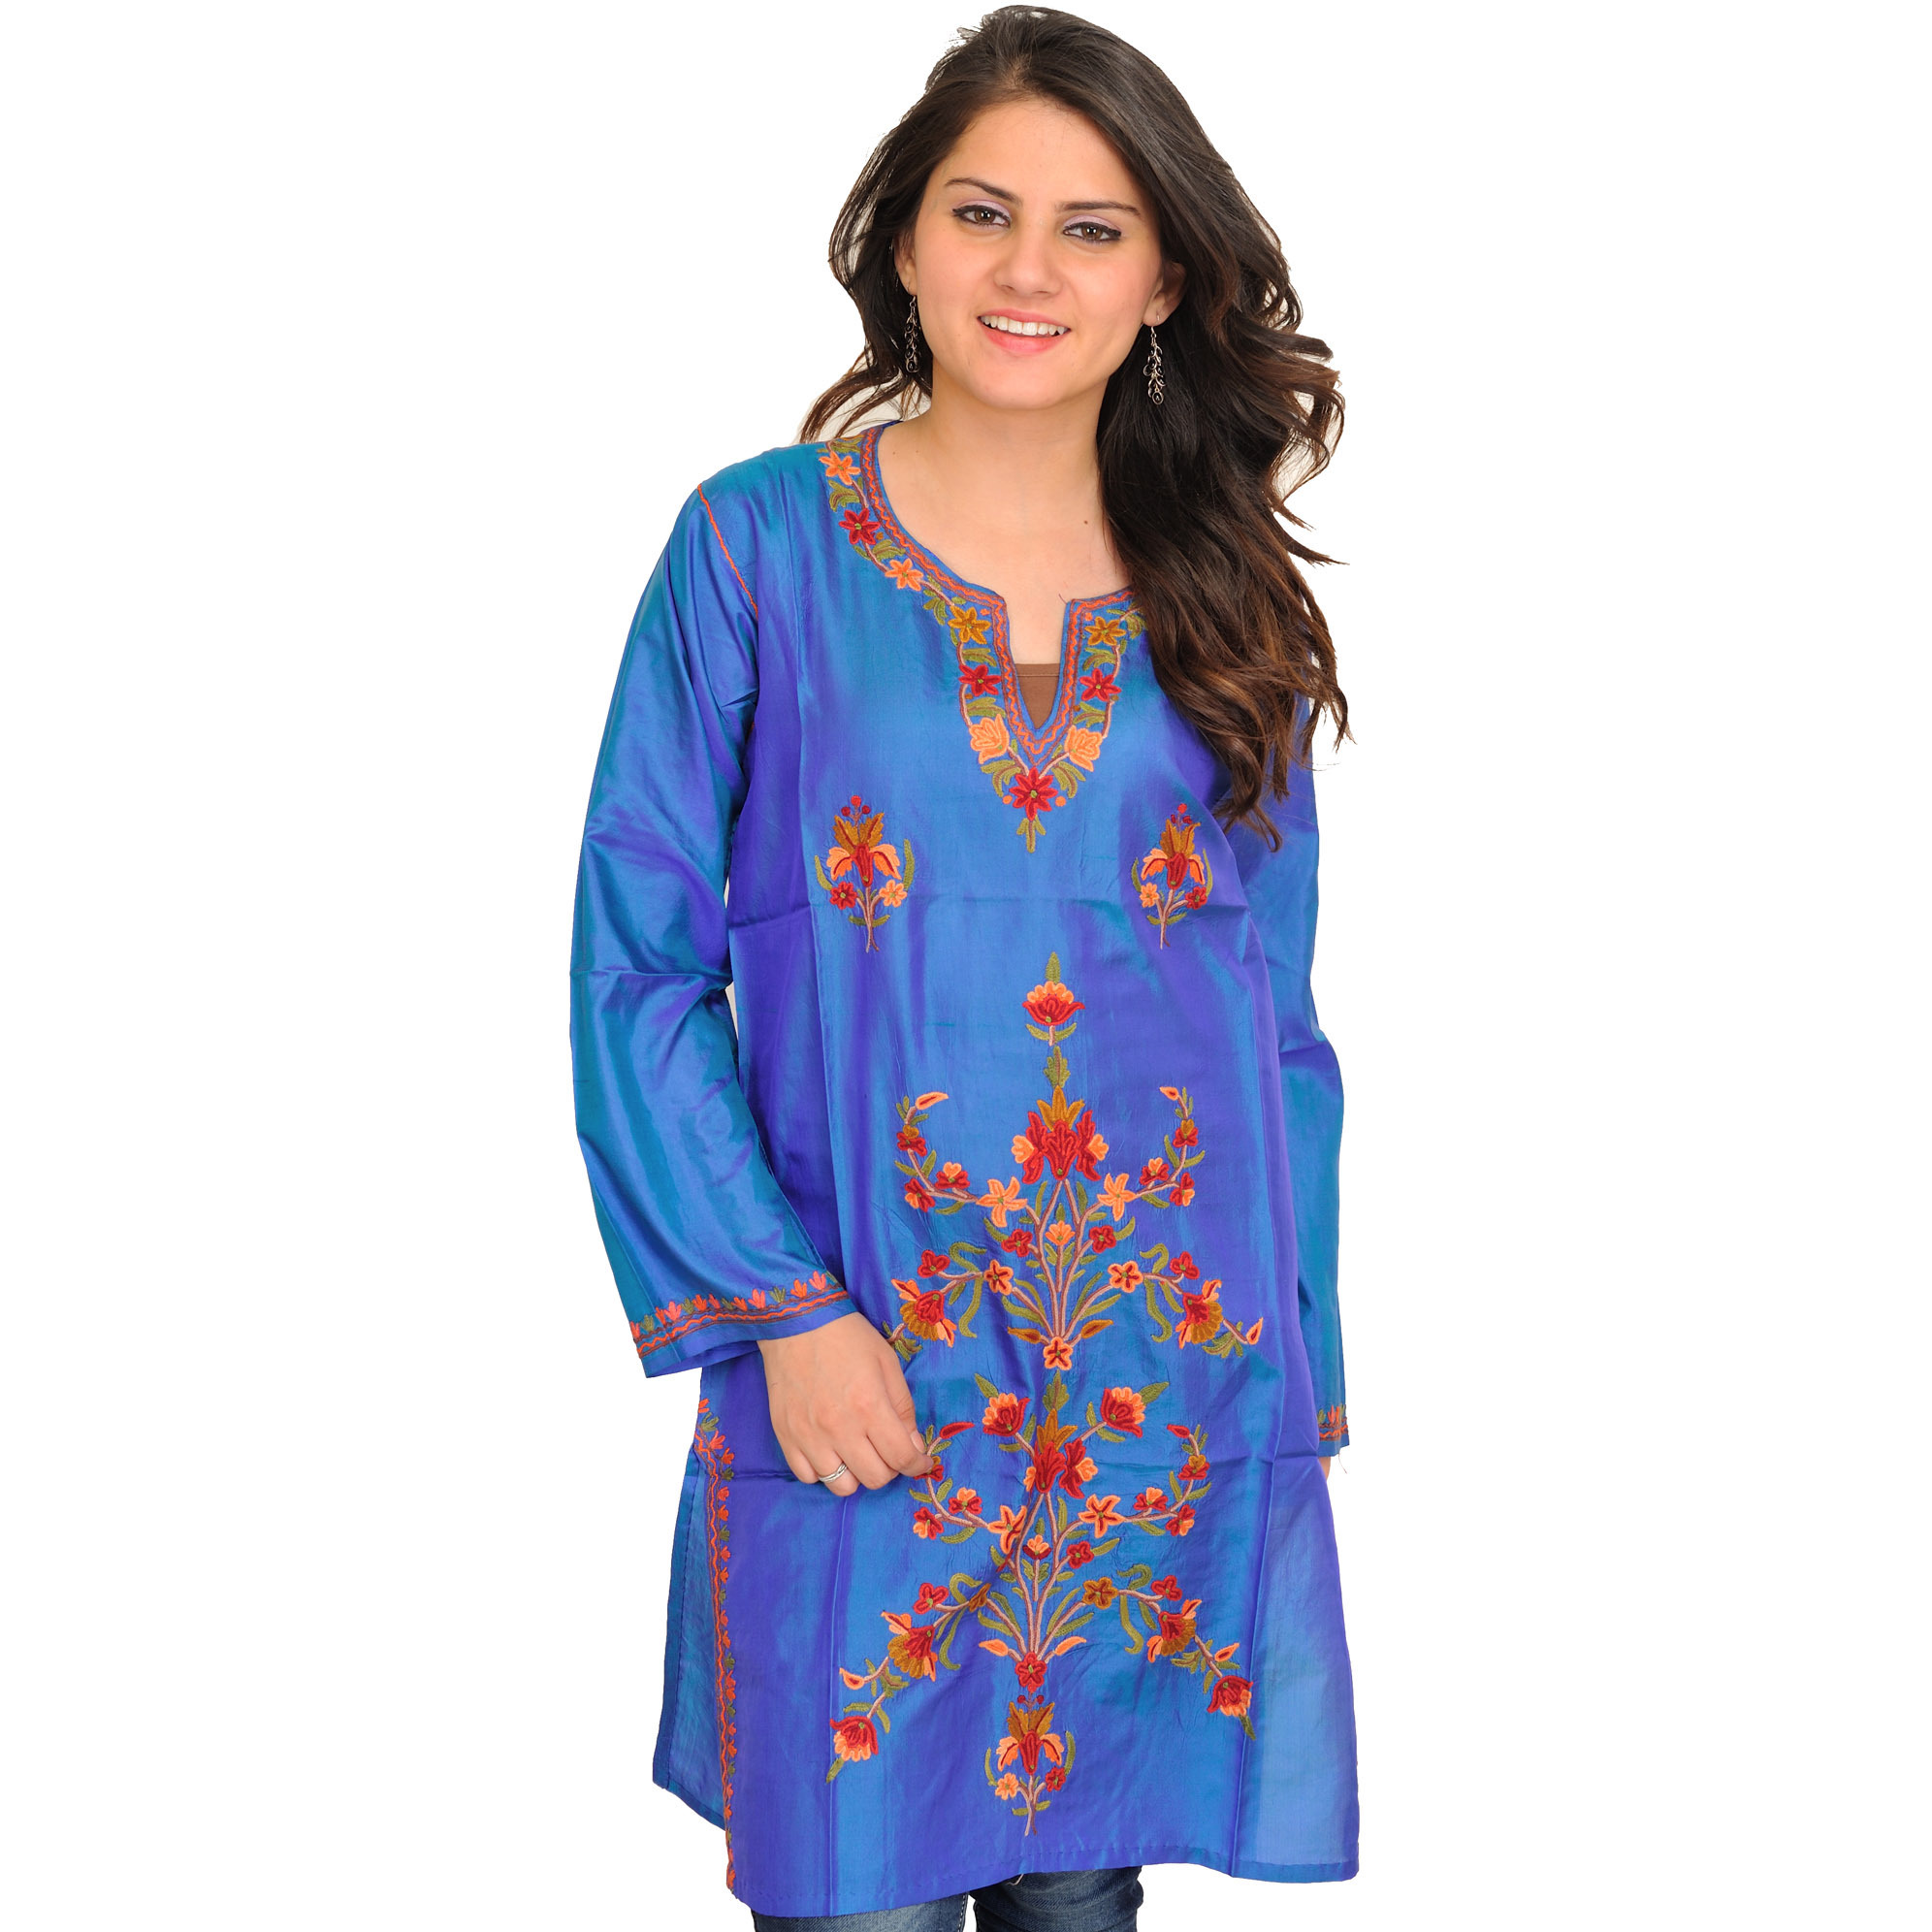 French-Blue Ari Hand-Embroidered Kurti from Kashmir